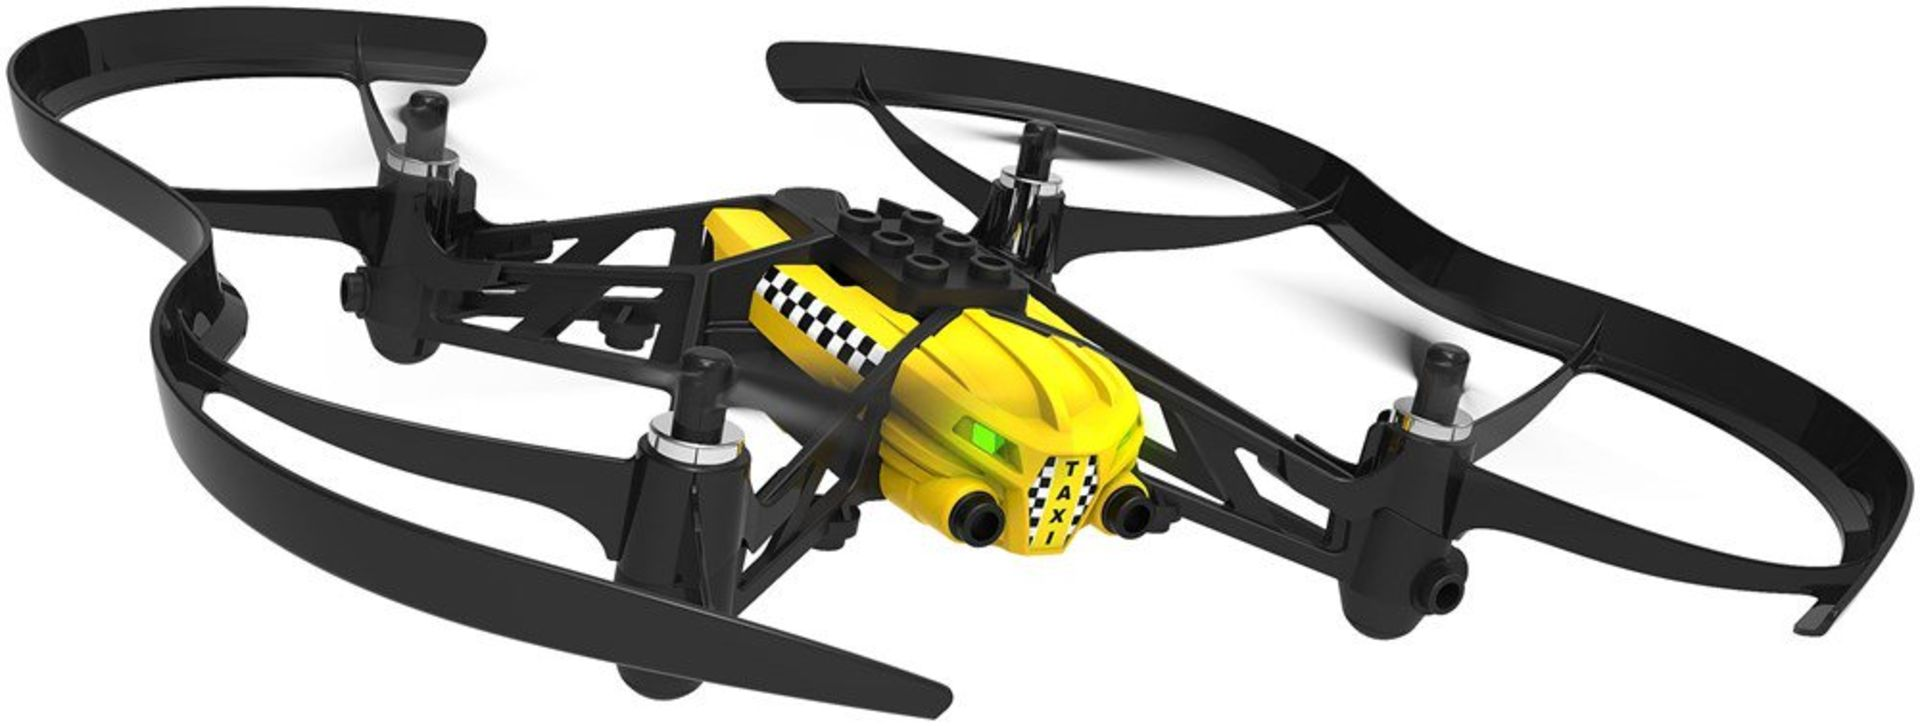 Lot 12036 - V Brand New Parrot Minidrone Travis Airborn Smartphone Controlled Cargo Drone - 360 Degree